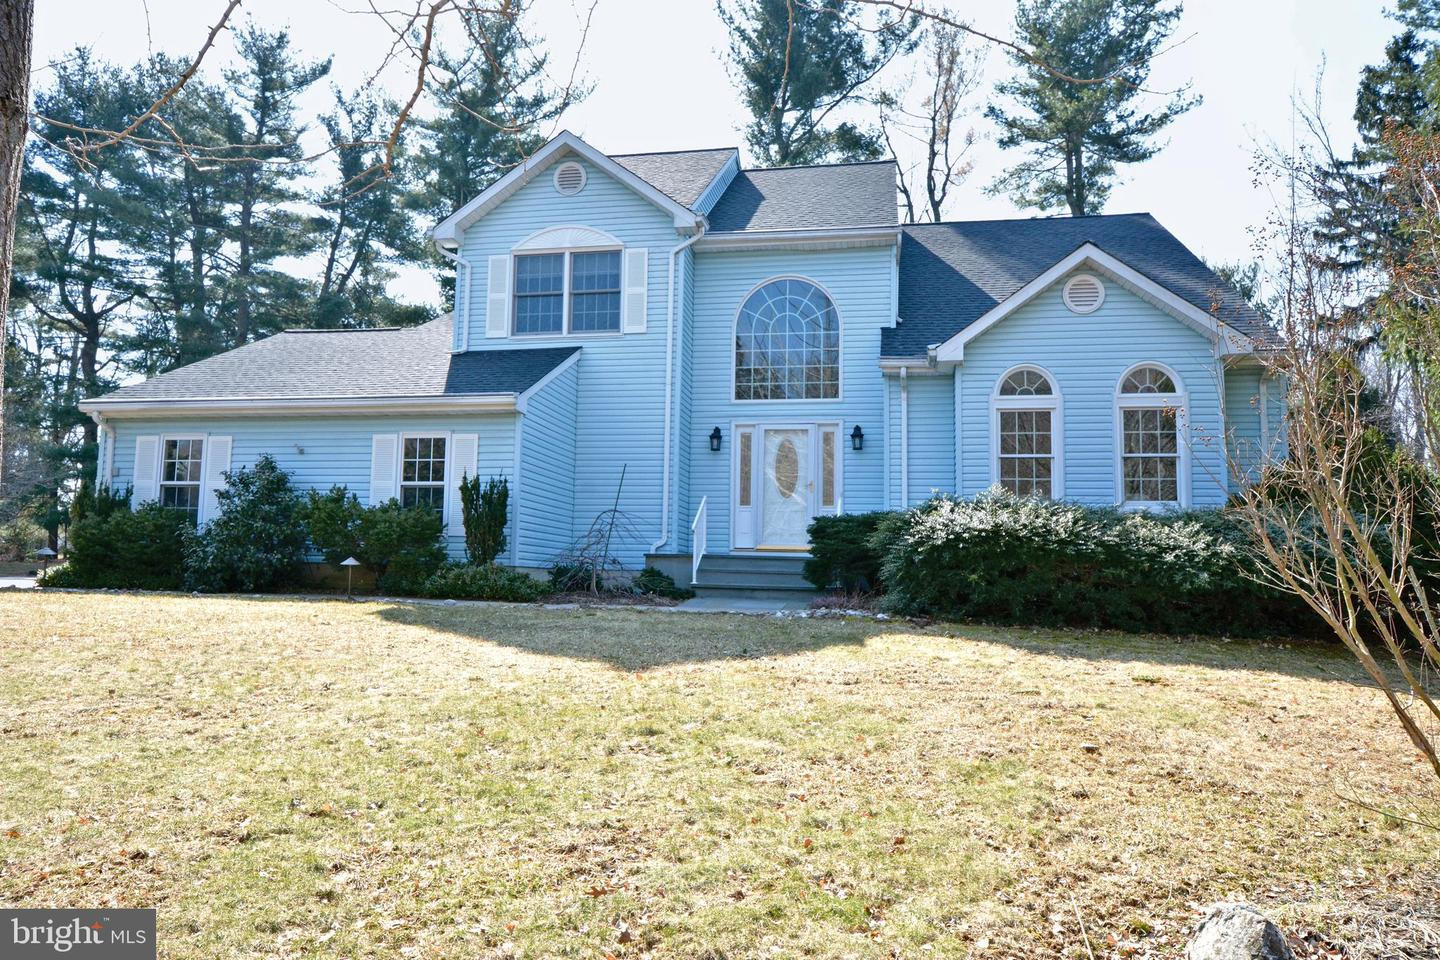 16 FRAN AVE, EWING, NJ 08638